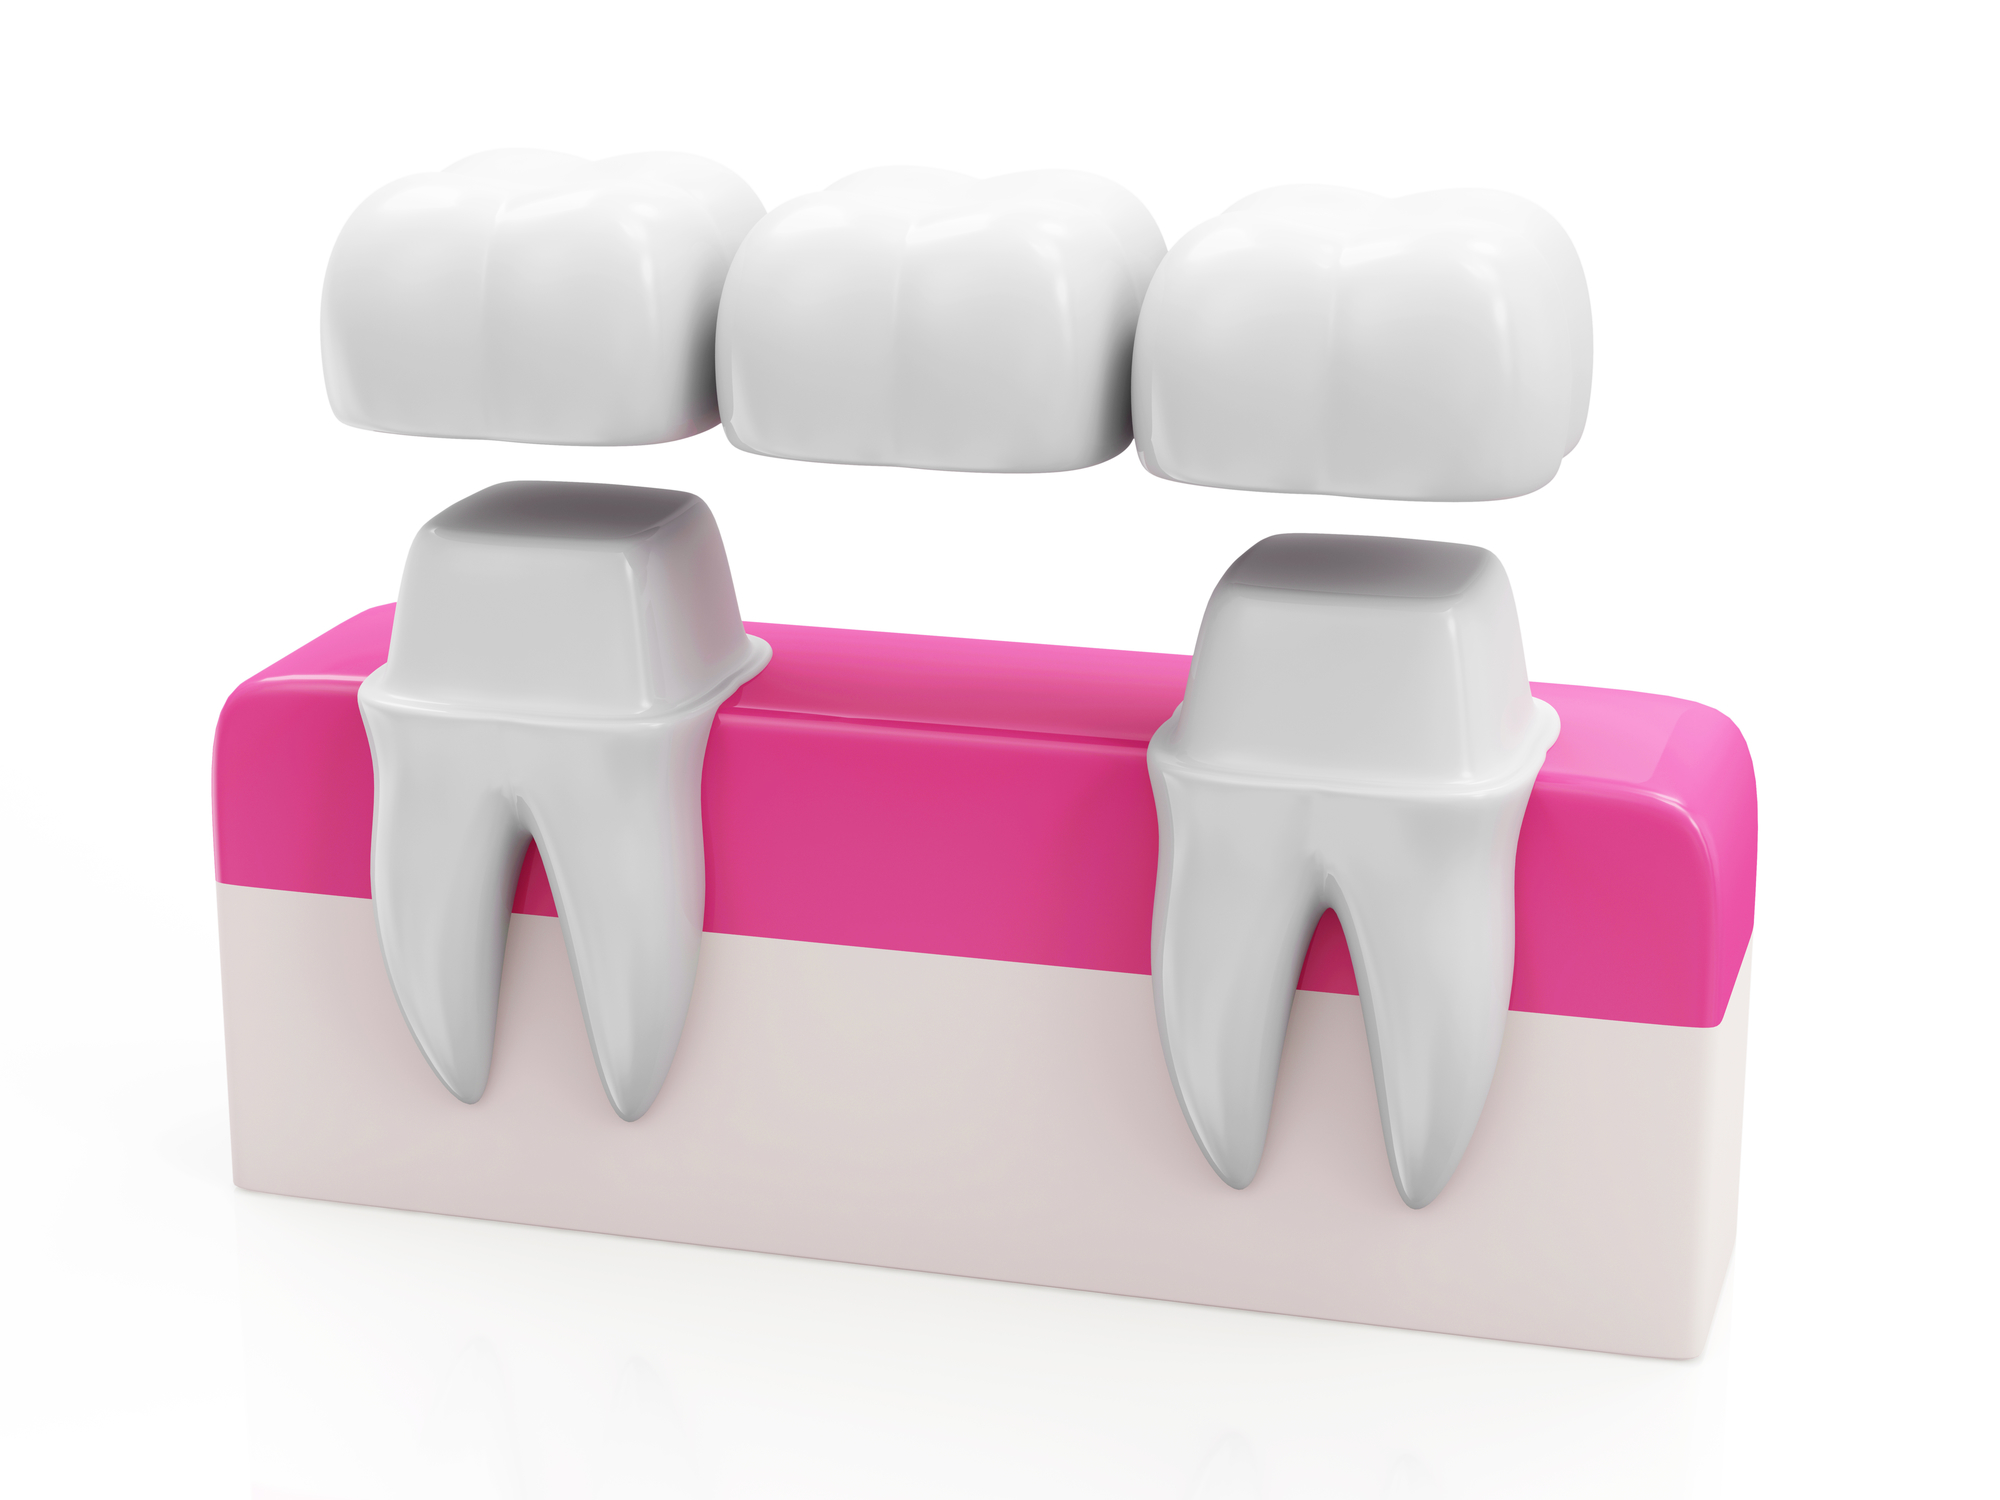 What are options for tooth replacement palm beach gardens?